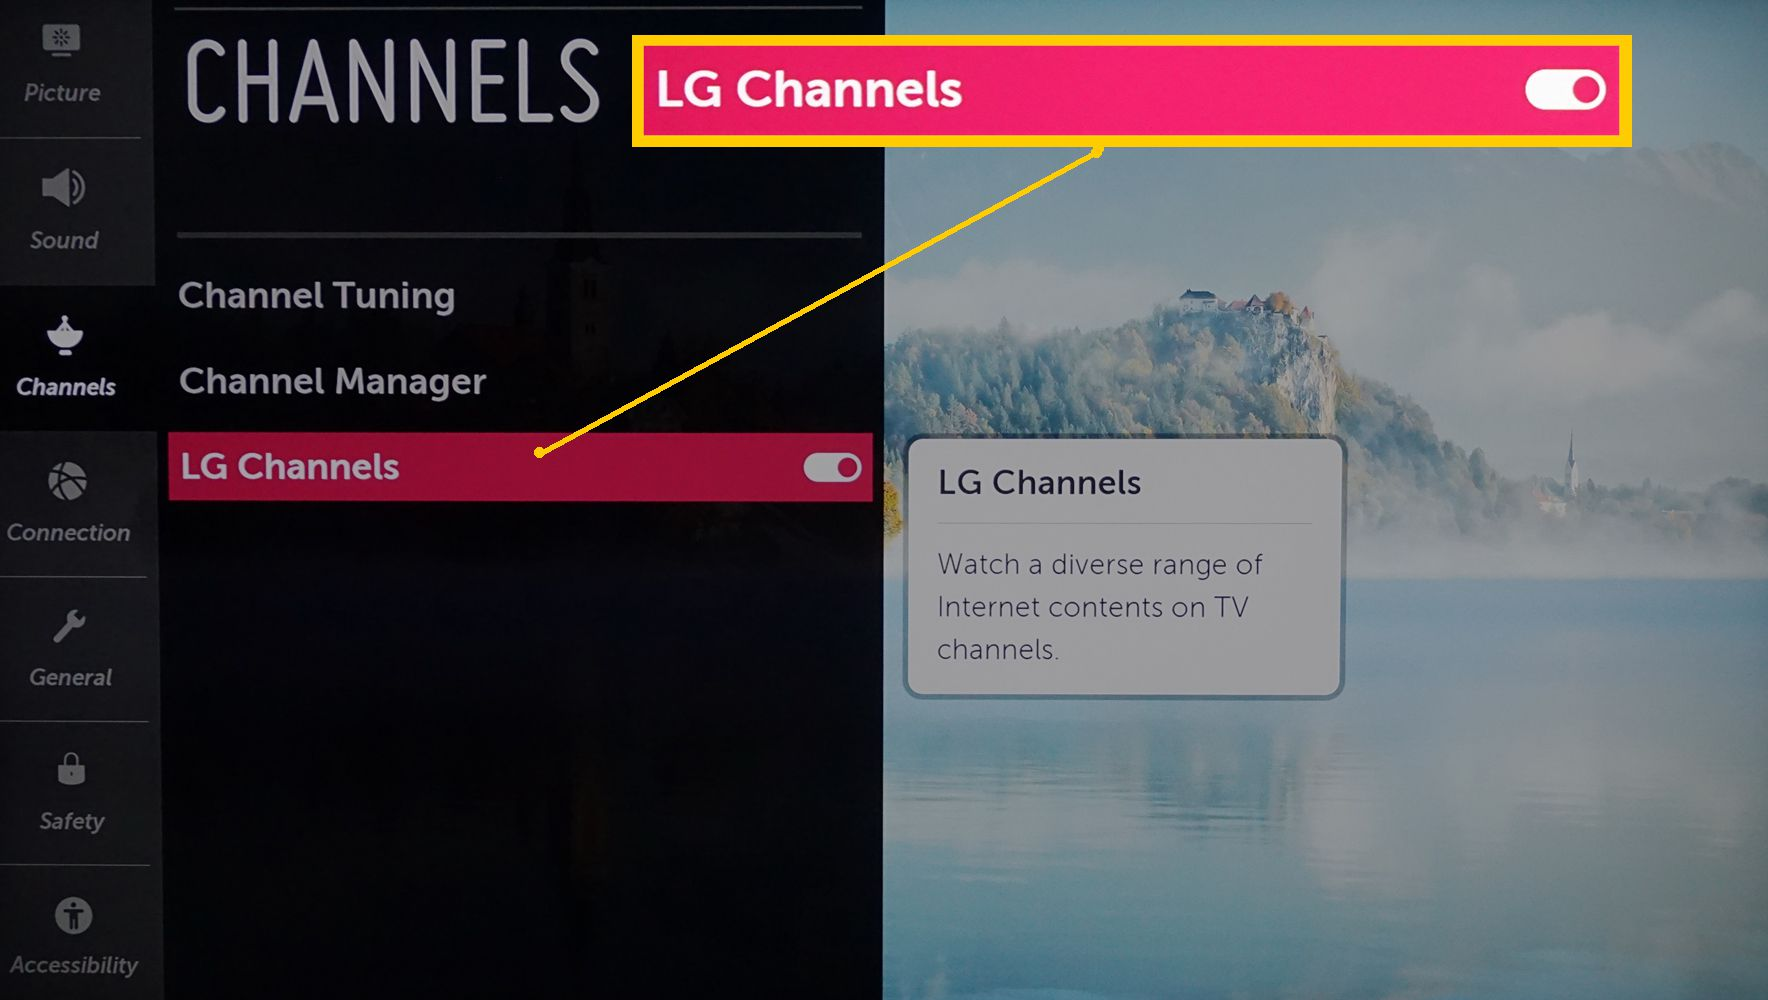 LG Channels Turned On